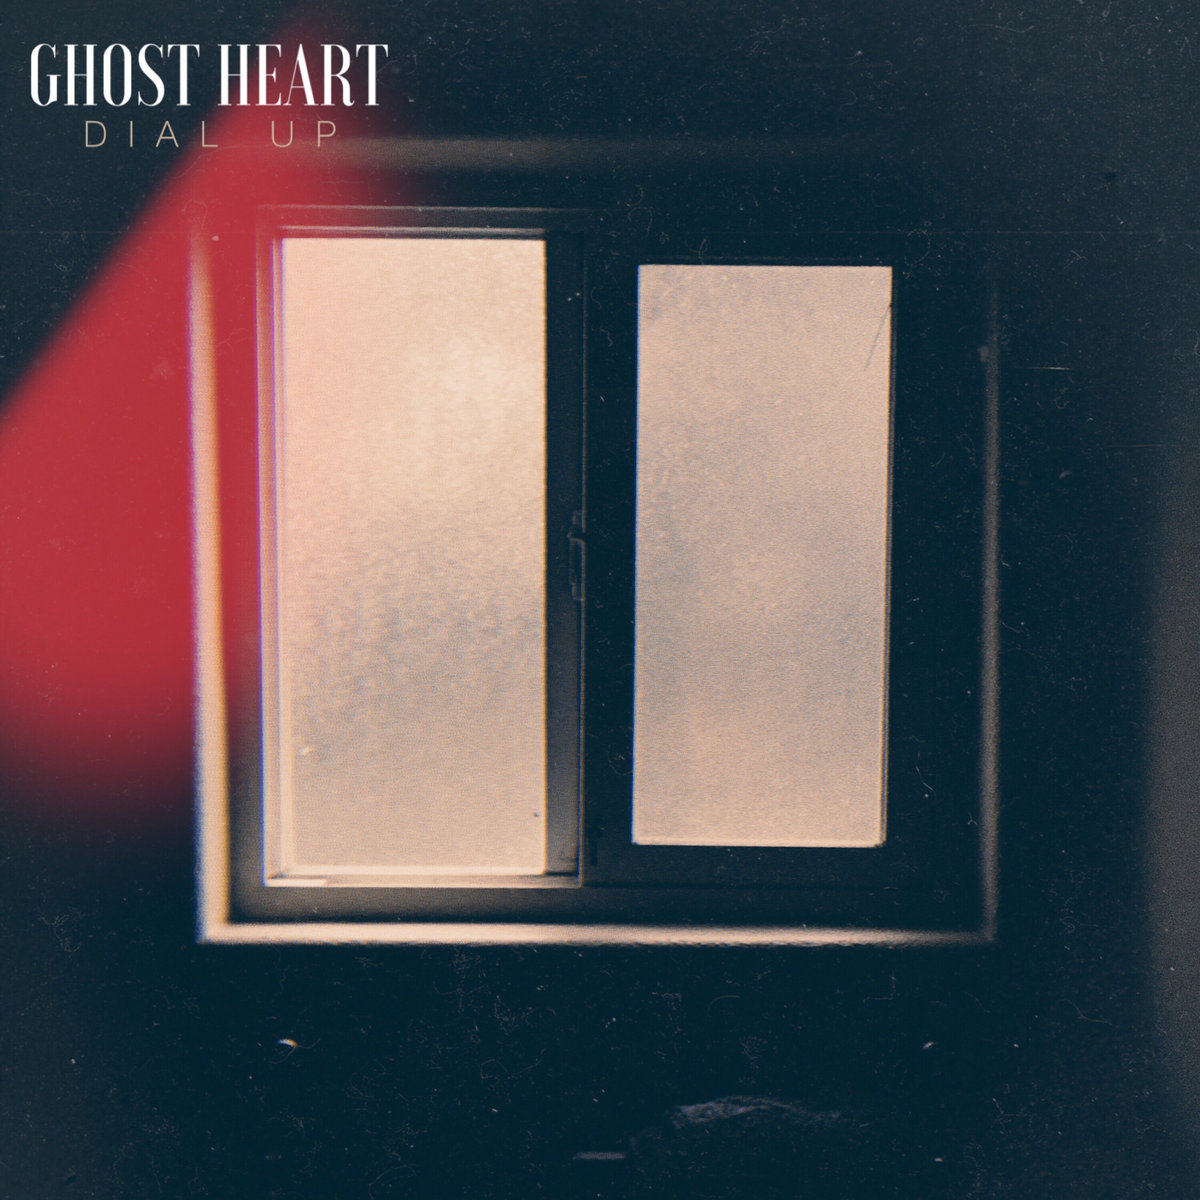 Ghost Heart - Dial Up [single] (2019)